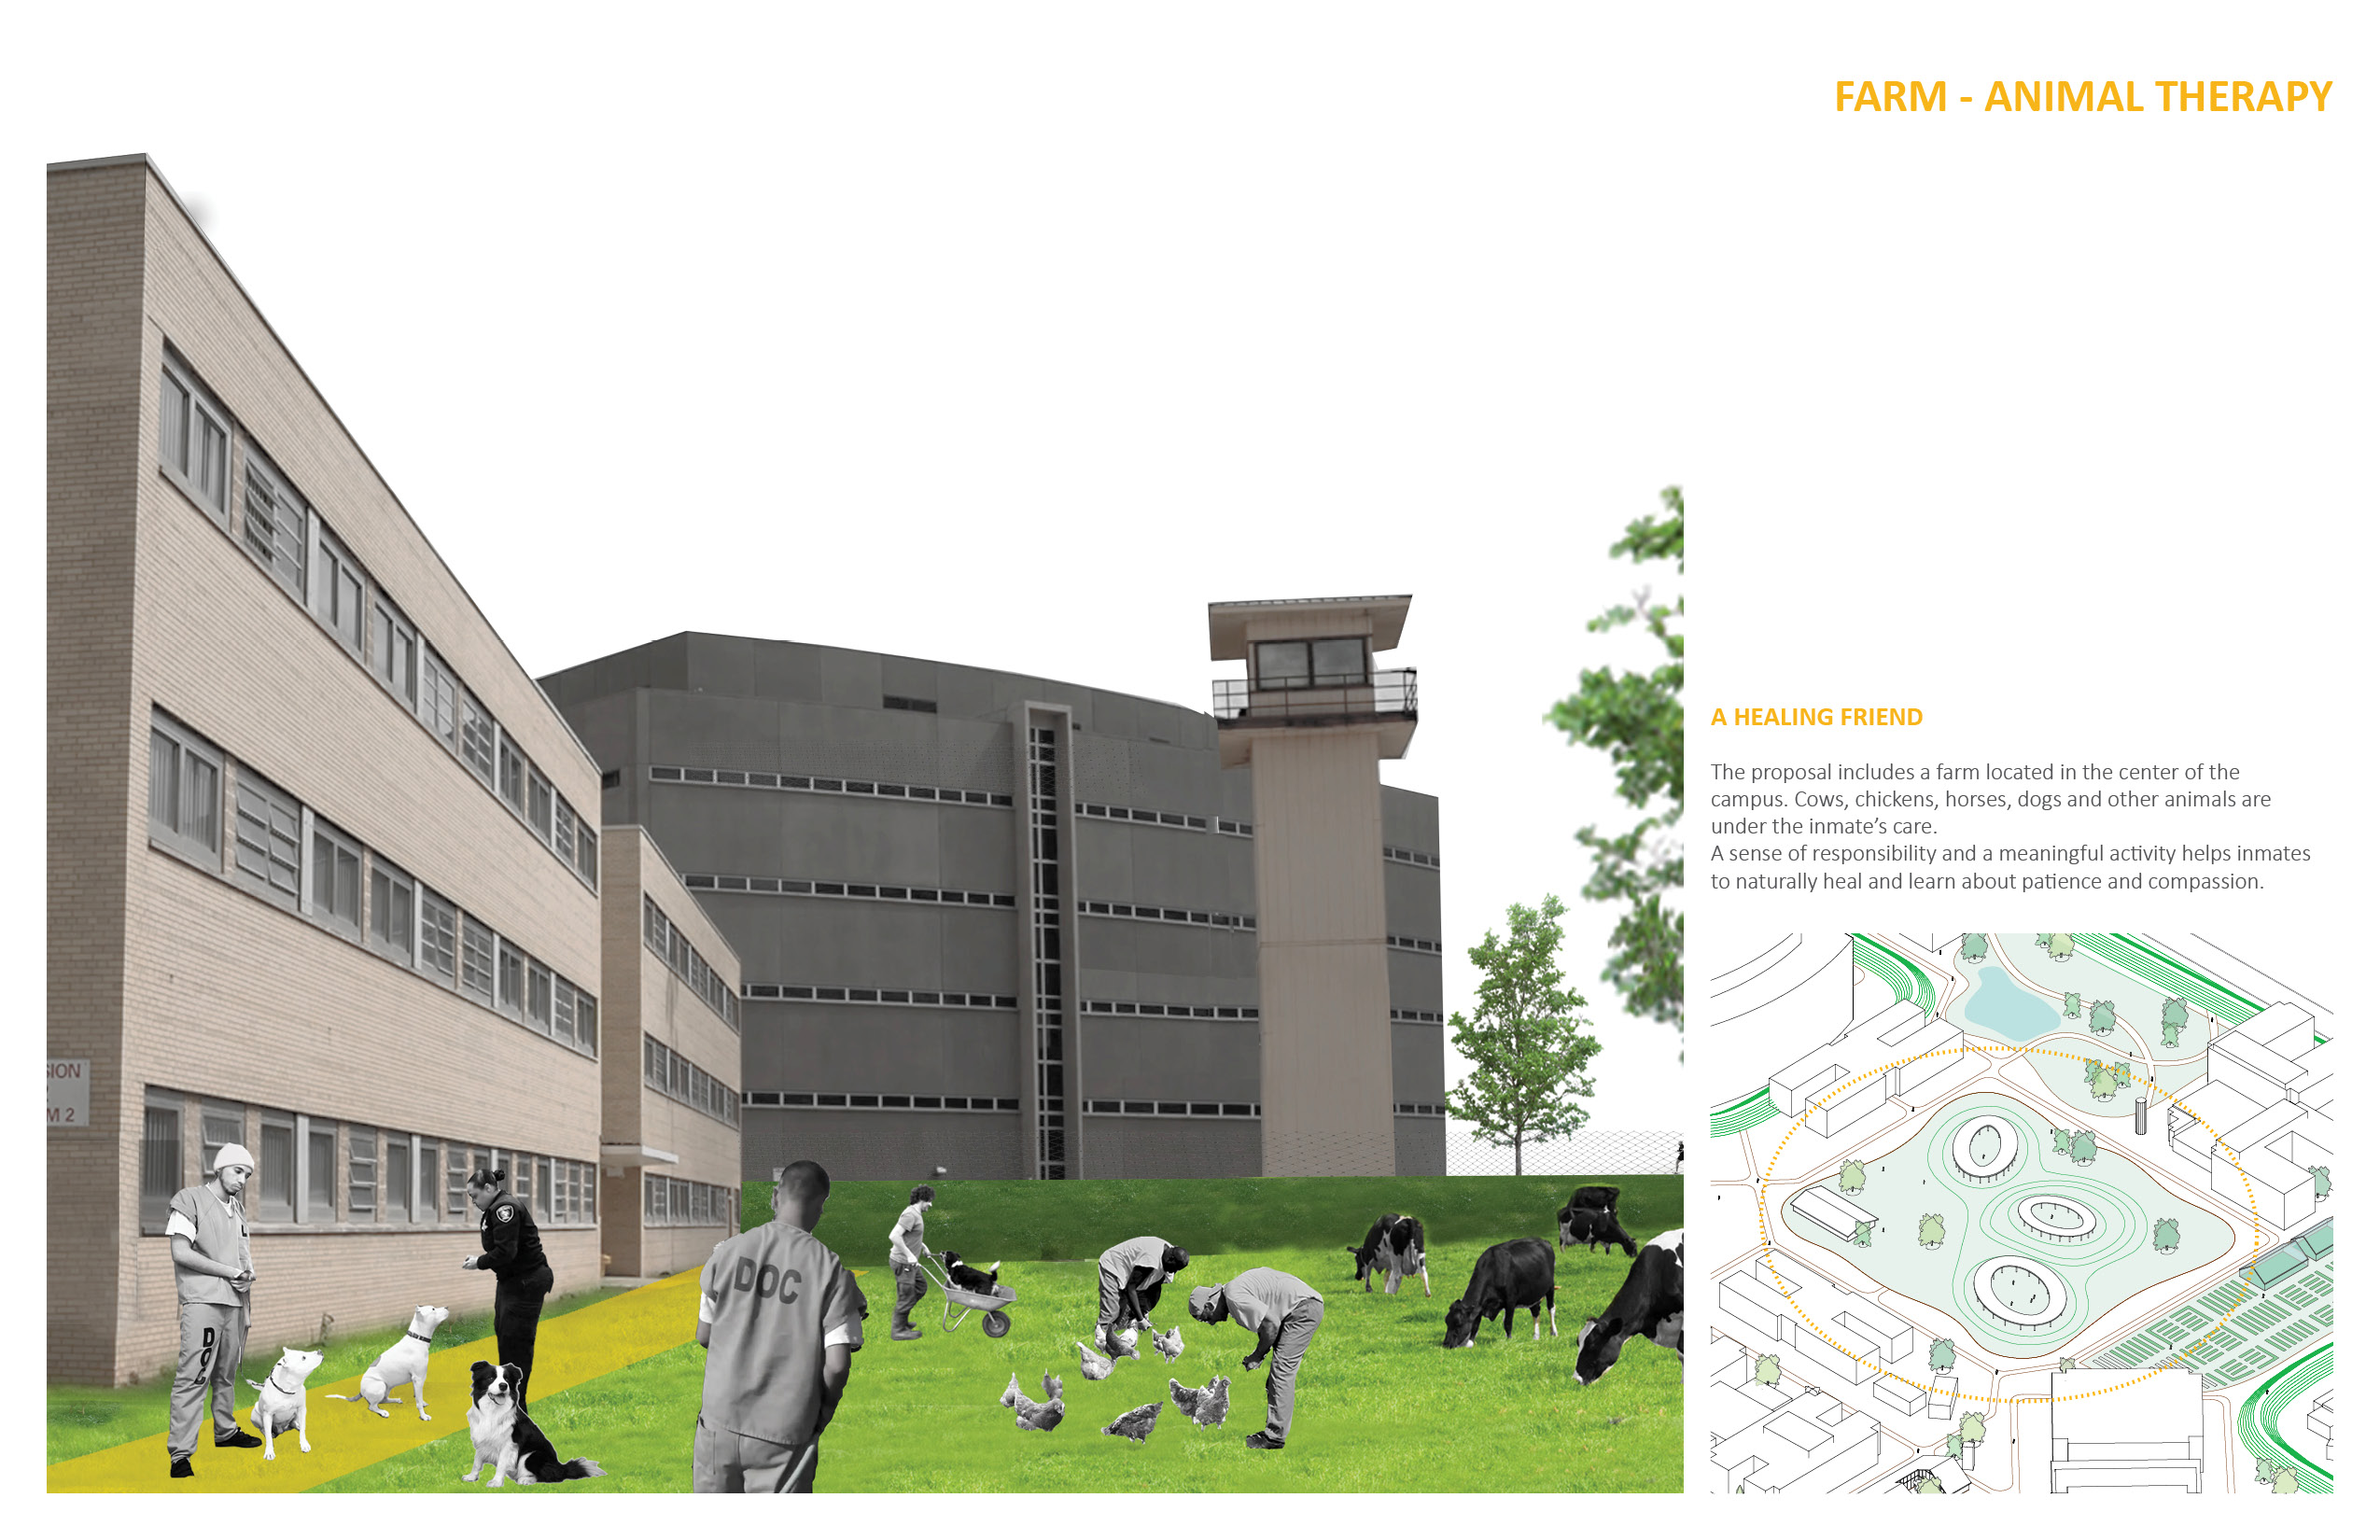 Alba Quezada - Campus Proposal - Farm